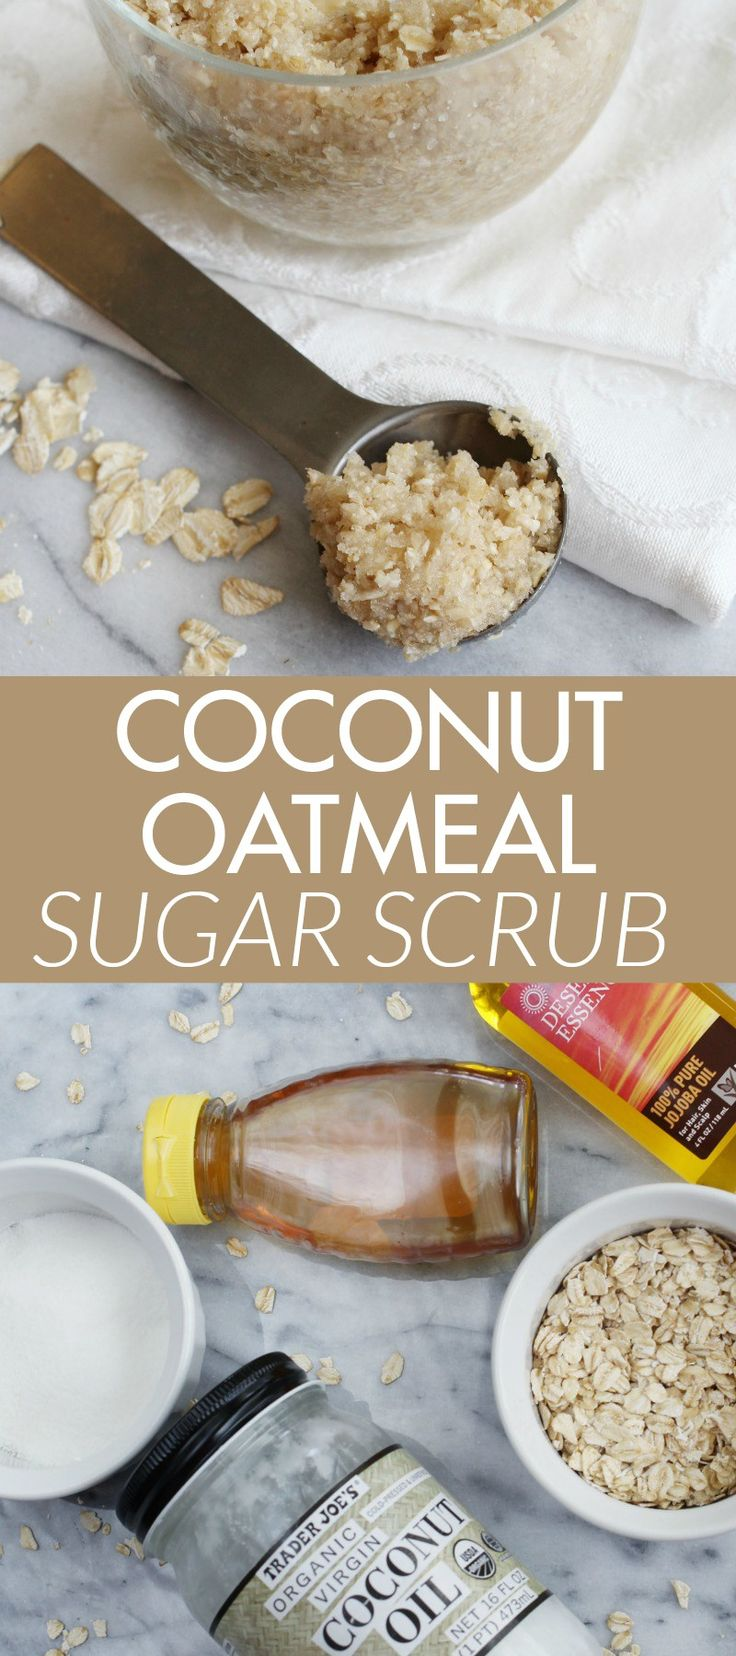 DIY Coconut Oatmeal Sugar Scrub made with only a few, simple ingredients! I bet you even have these ingredients in your kitchen!